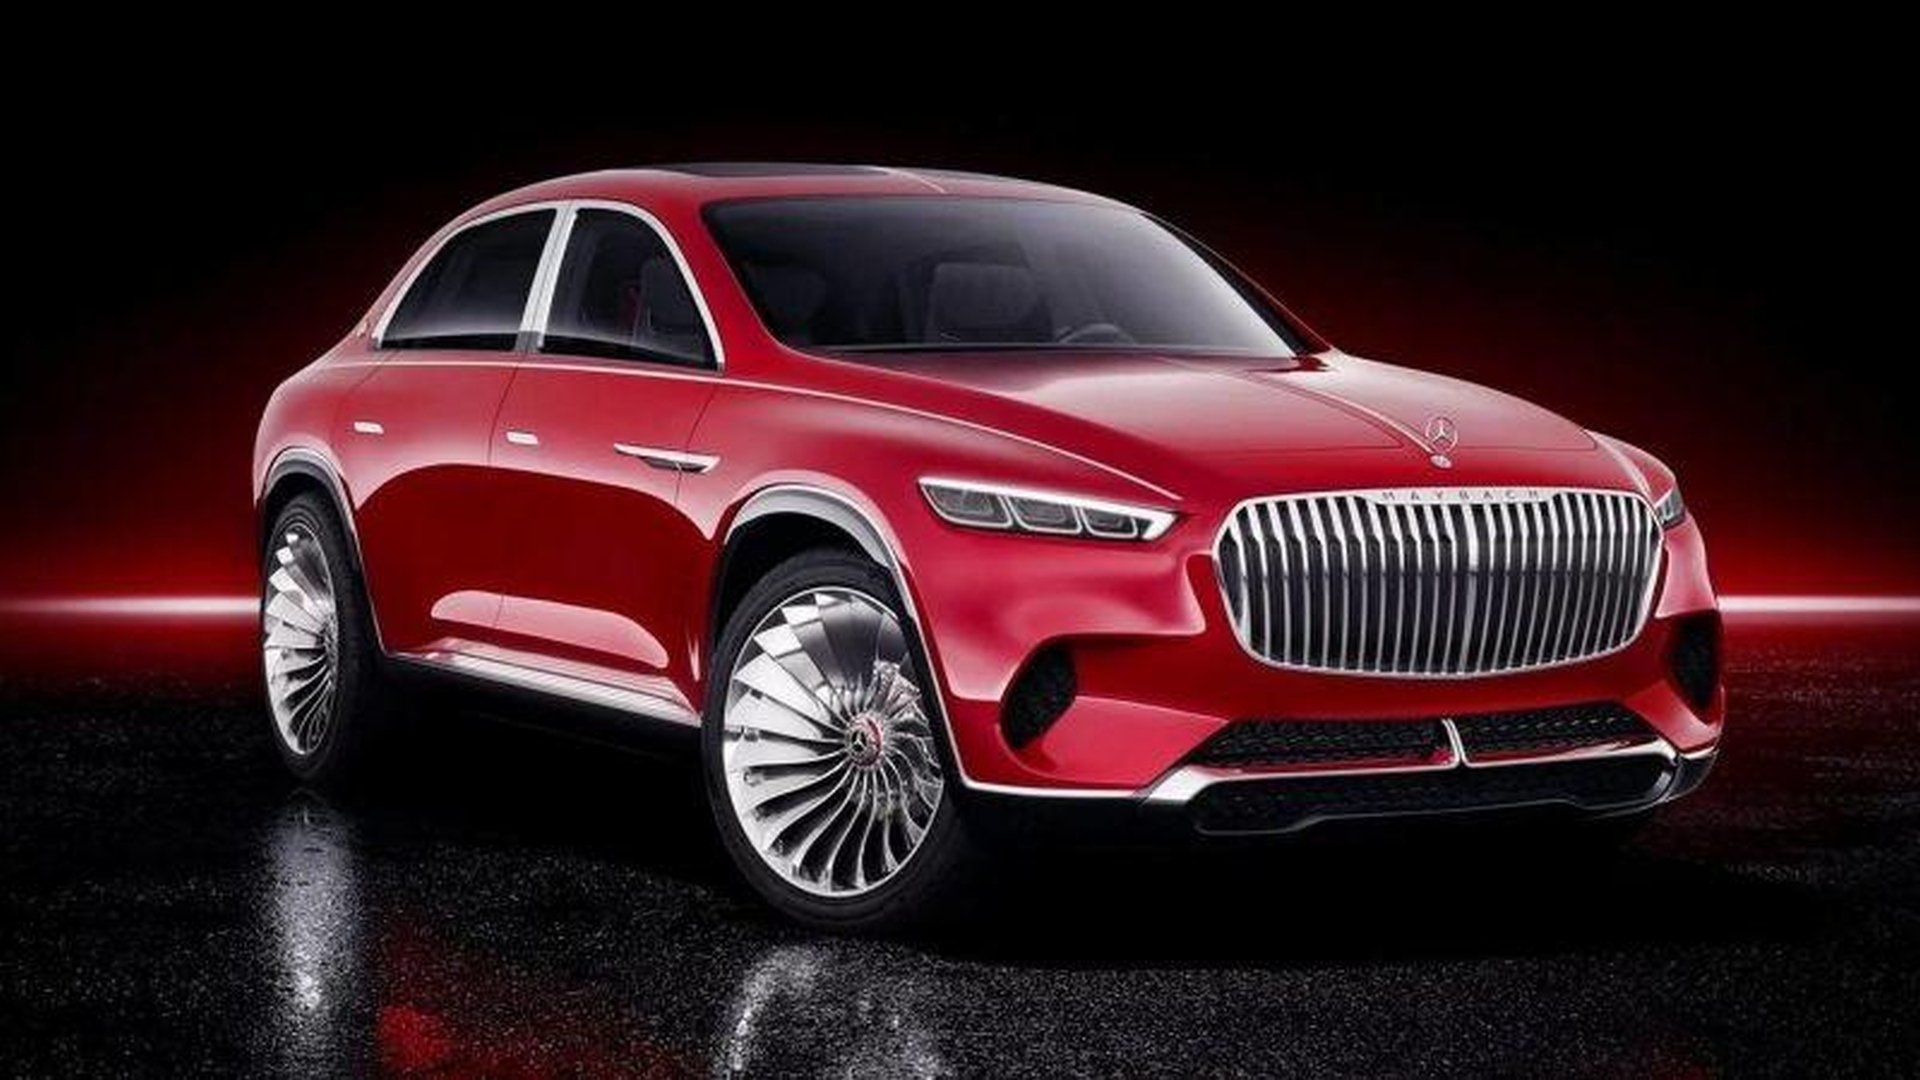 mercedes-maybach-ultimate-suv-1.jpg